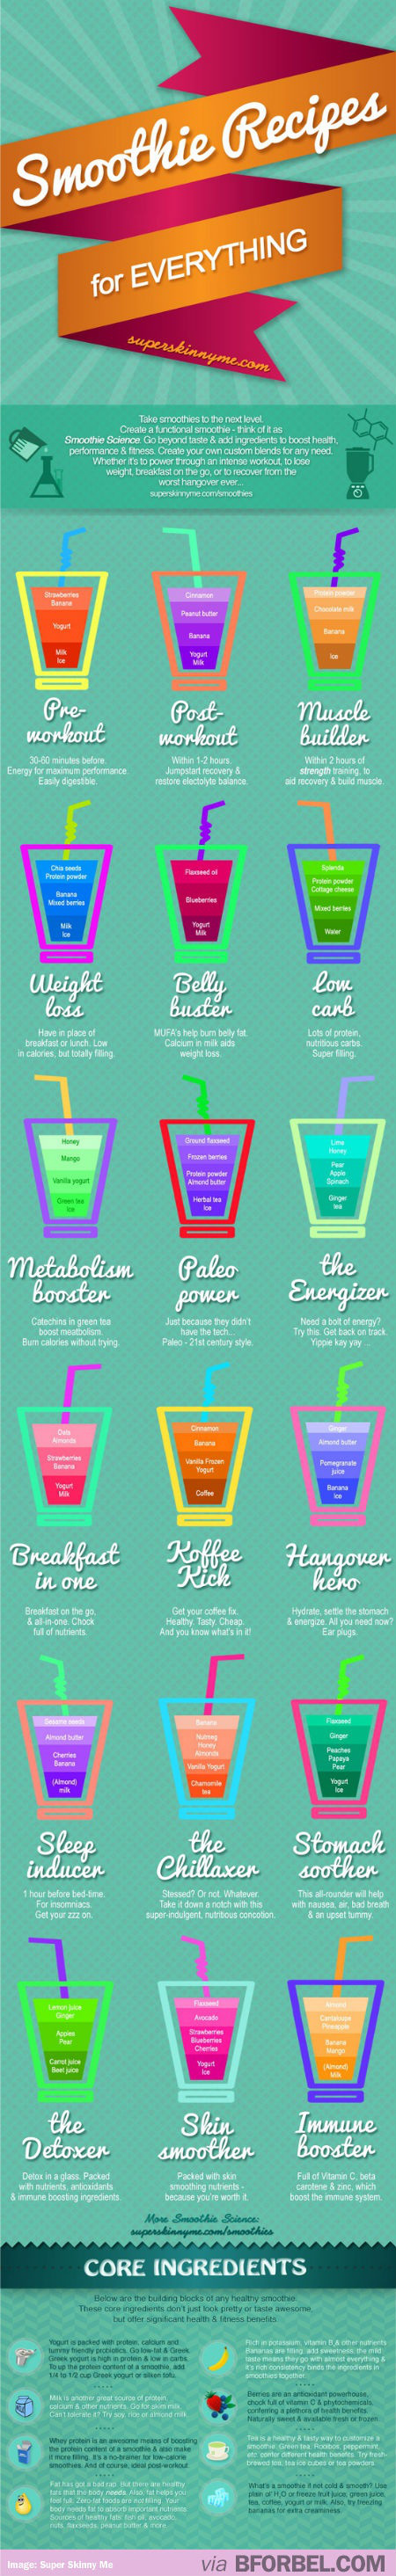 Smoothies Recipes - Who needs a shake mix? Not this girl! :)